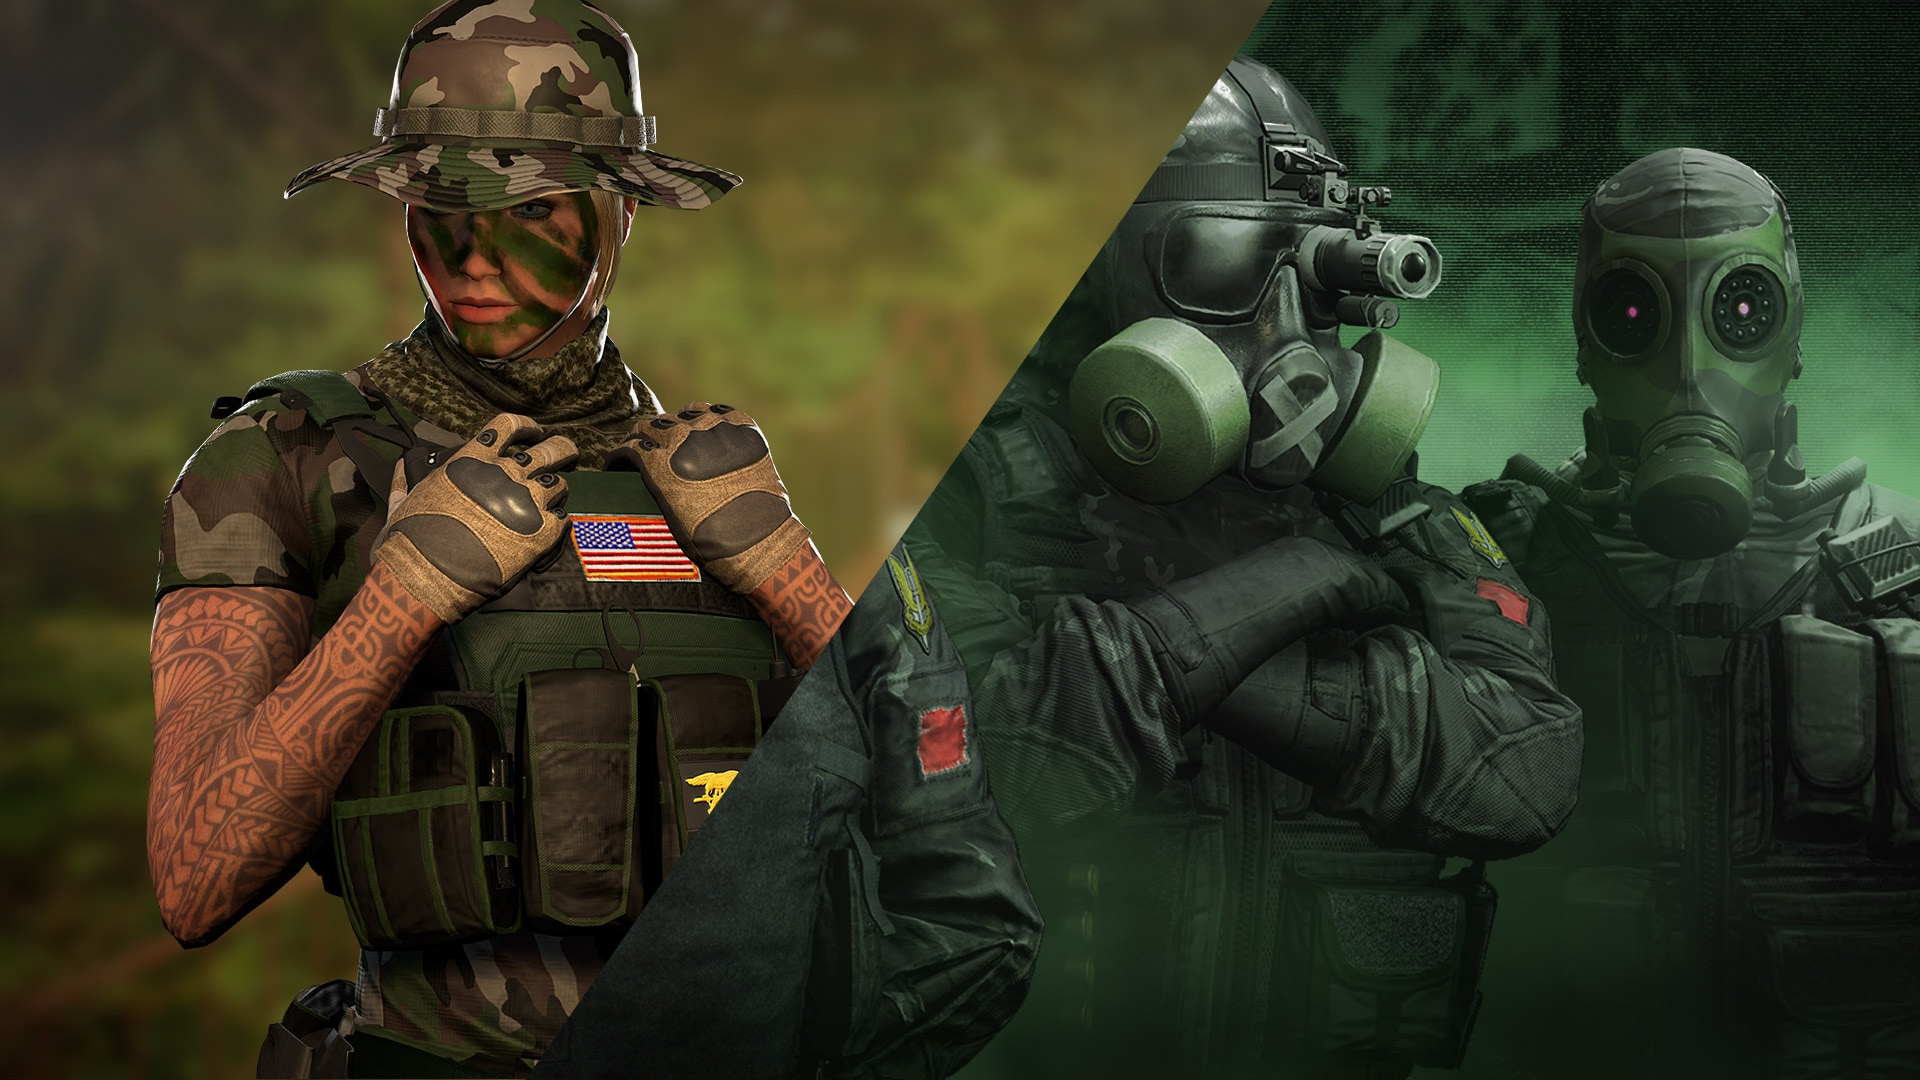 [2018-04-16] New Bundles coming to Rainbow Six Siege - April 16th, 2018 - HEADER/THUMBNAIL